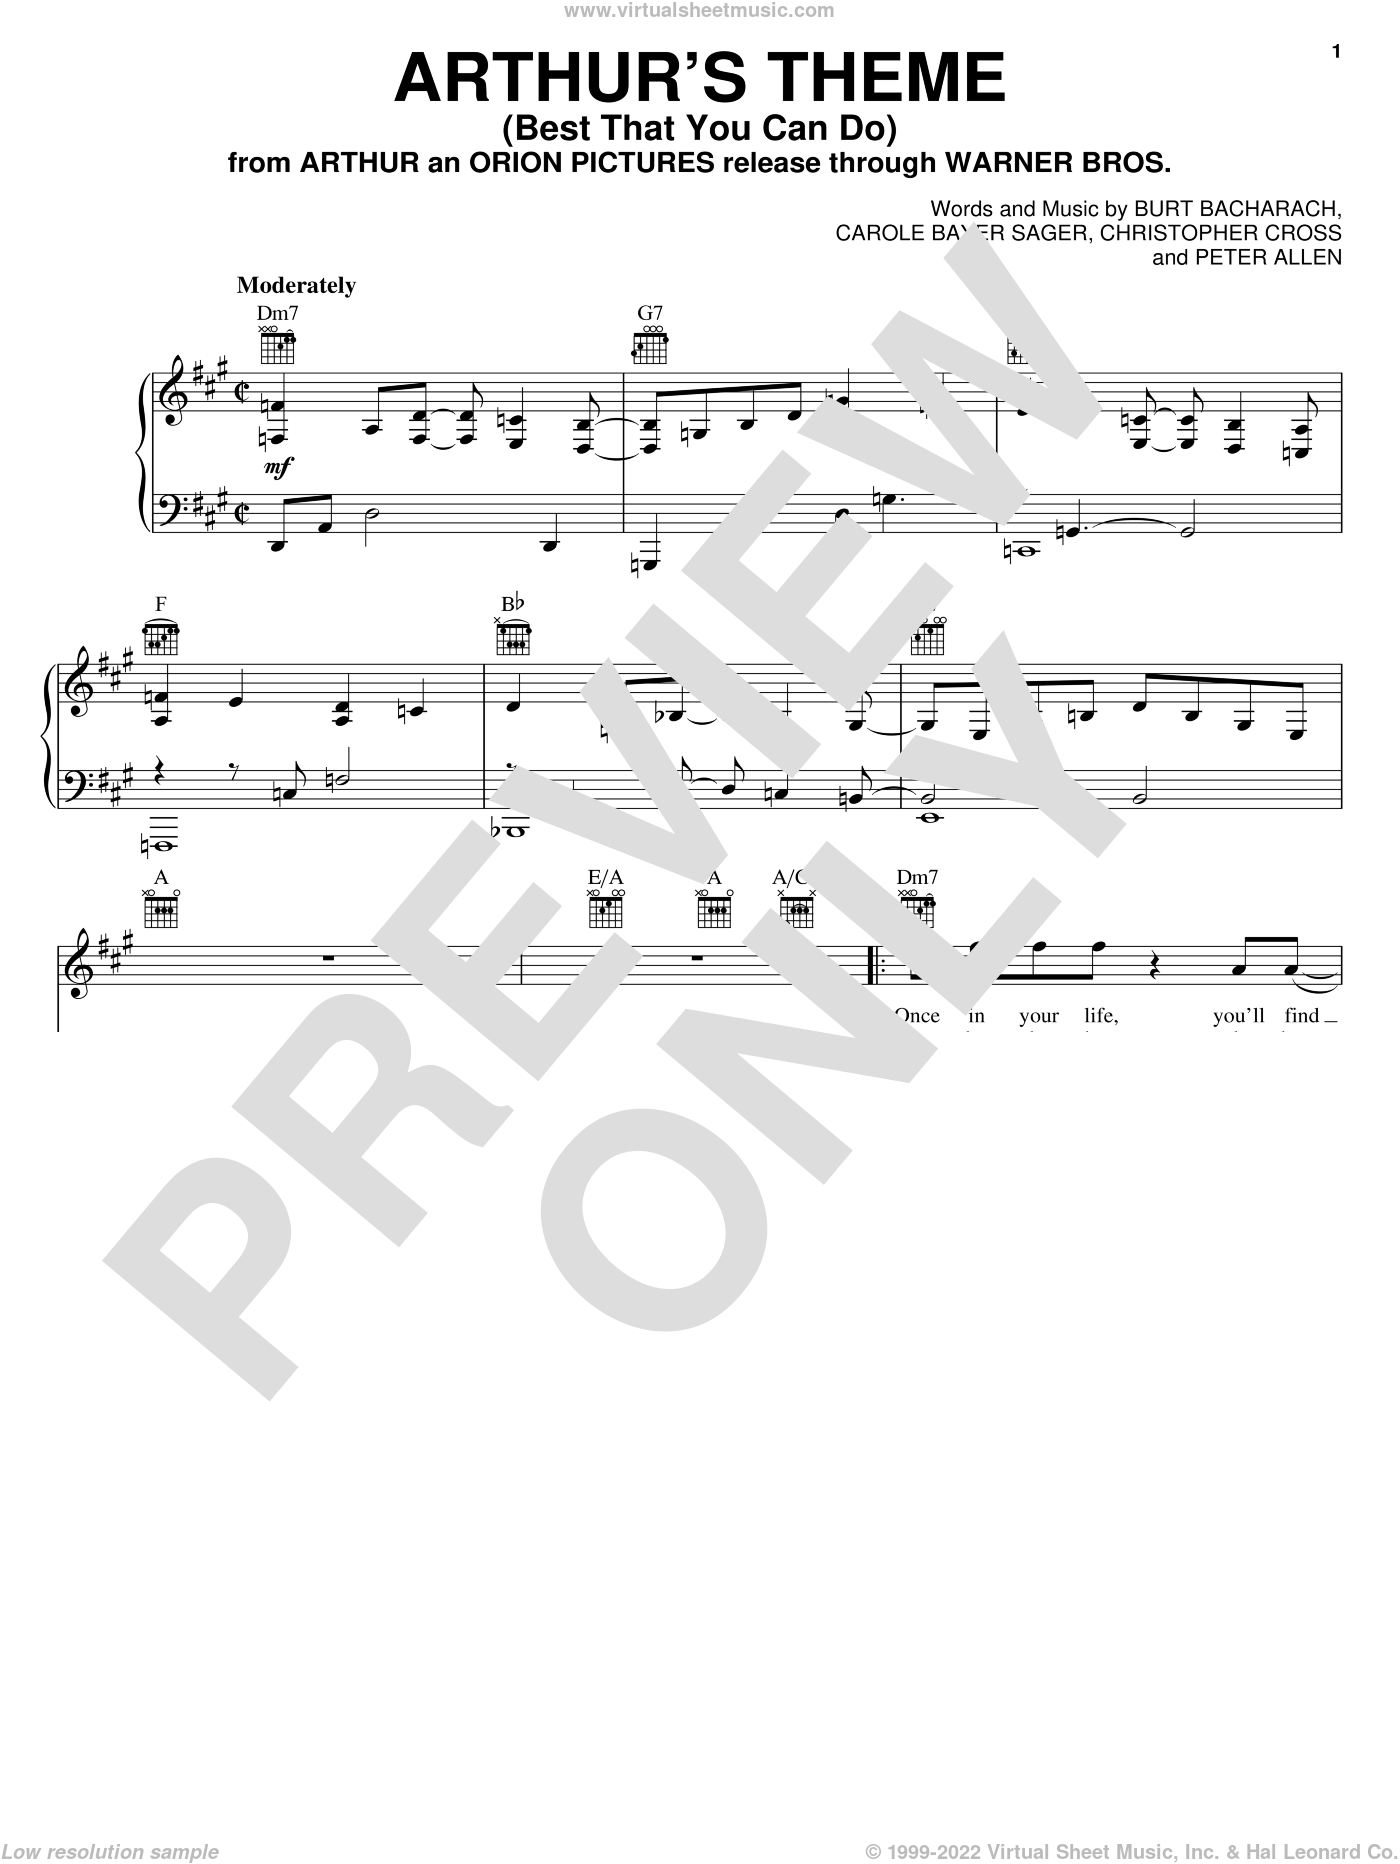 Arthur's Theme (Best That You Can Do) sheet music for voice, piano or guitar by Burt Bacharach, Carole Bayer Sager, Christopher Cross and Peter Allen, intermediate skill level